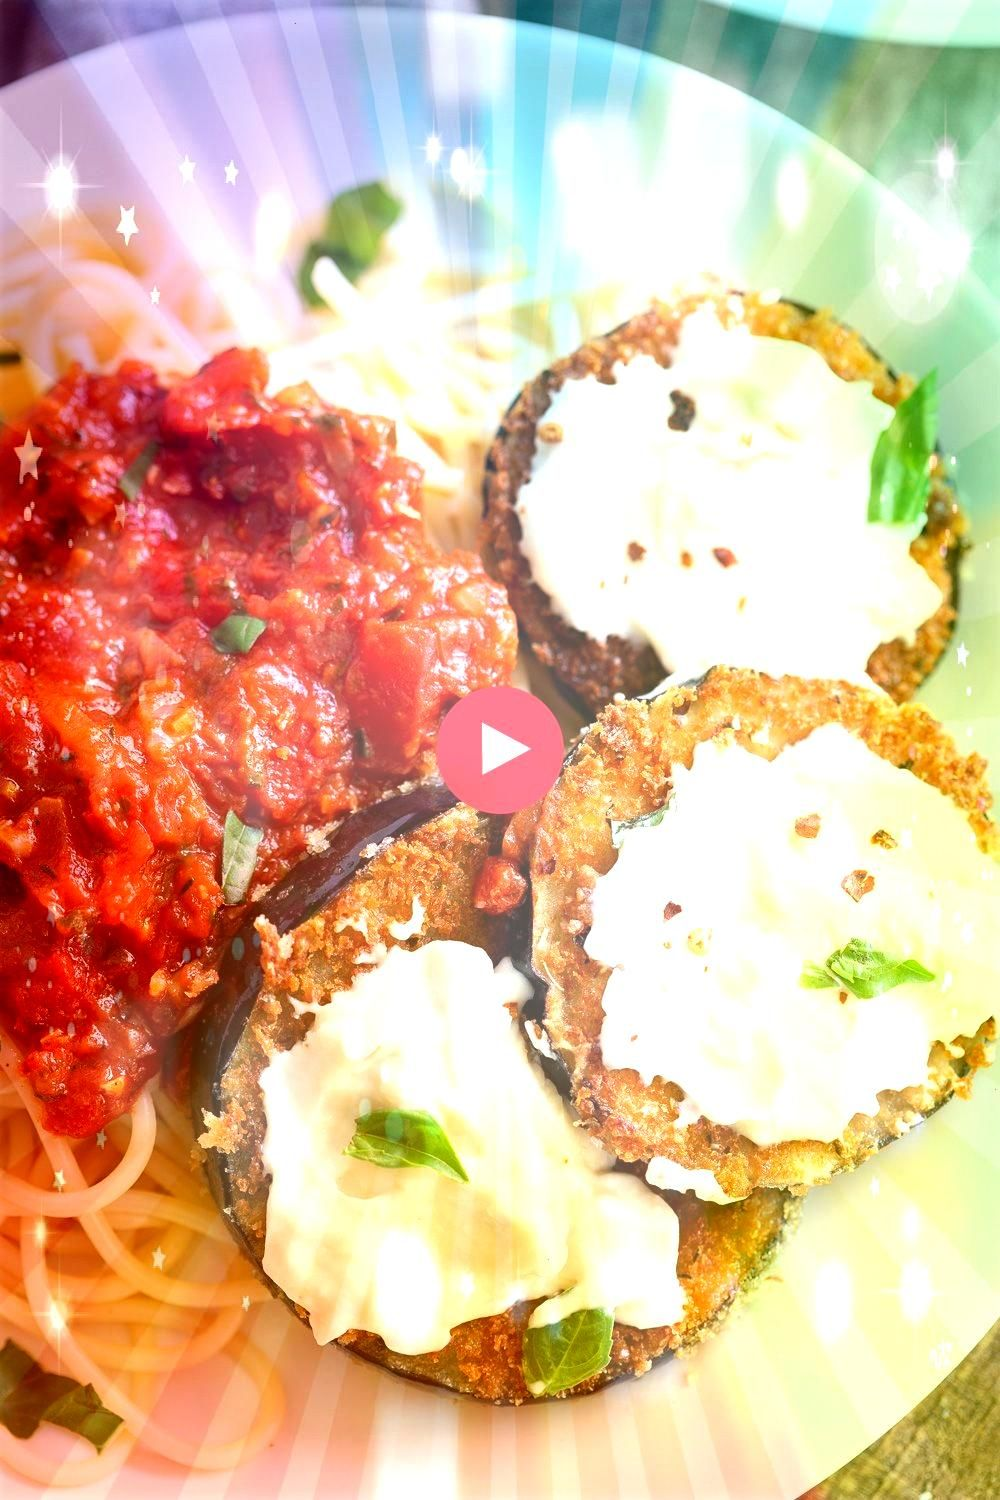 Eggplant Parmesan Recipe Breaded Eggplant baked and served over spaghetti and chunky marinara then topped with cashew mozzarella cream Fancy and so Delicious Nutfree opti...